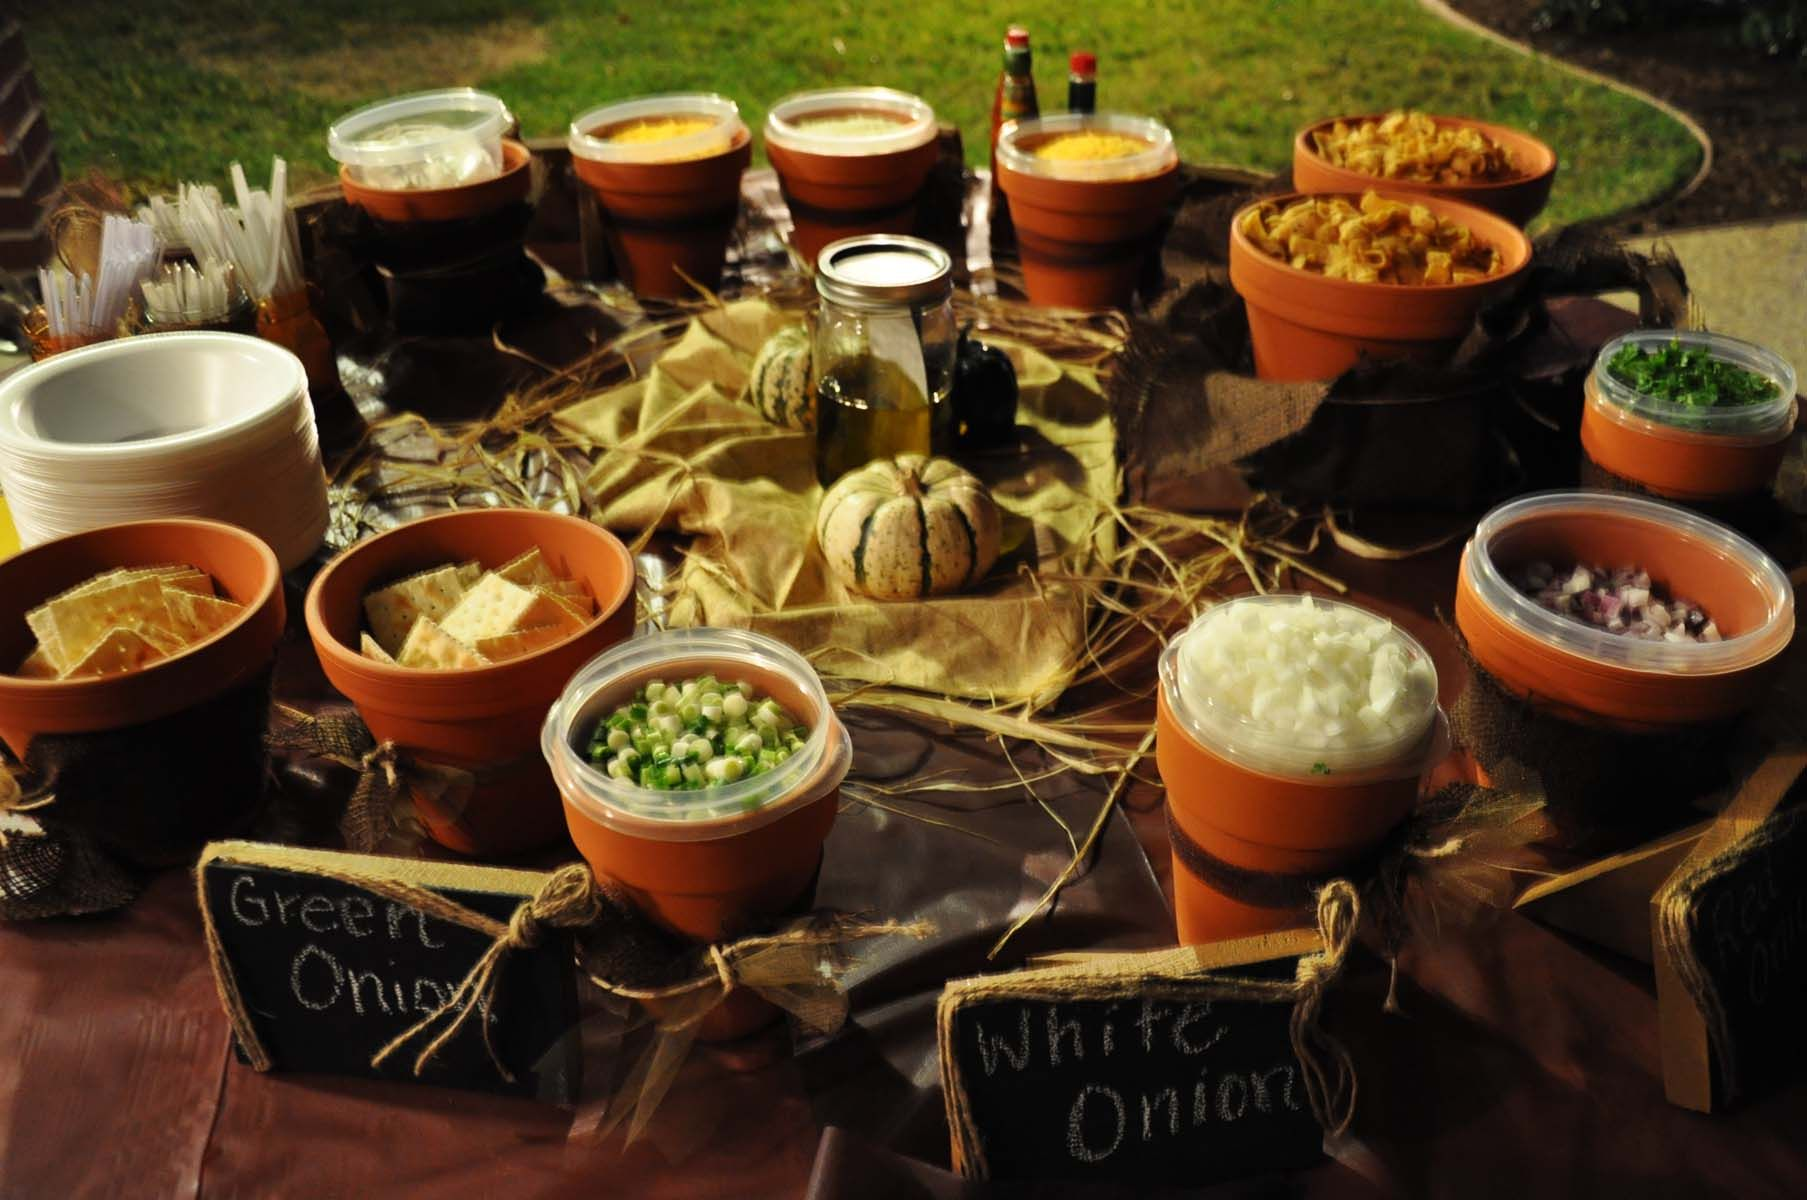 This chili bar with toppings displayed in terracotta pots brings a homey feel to any #Atlanta southern wedding.